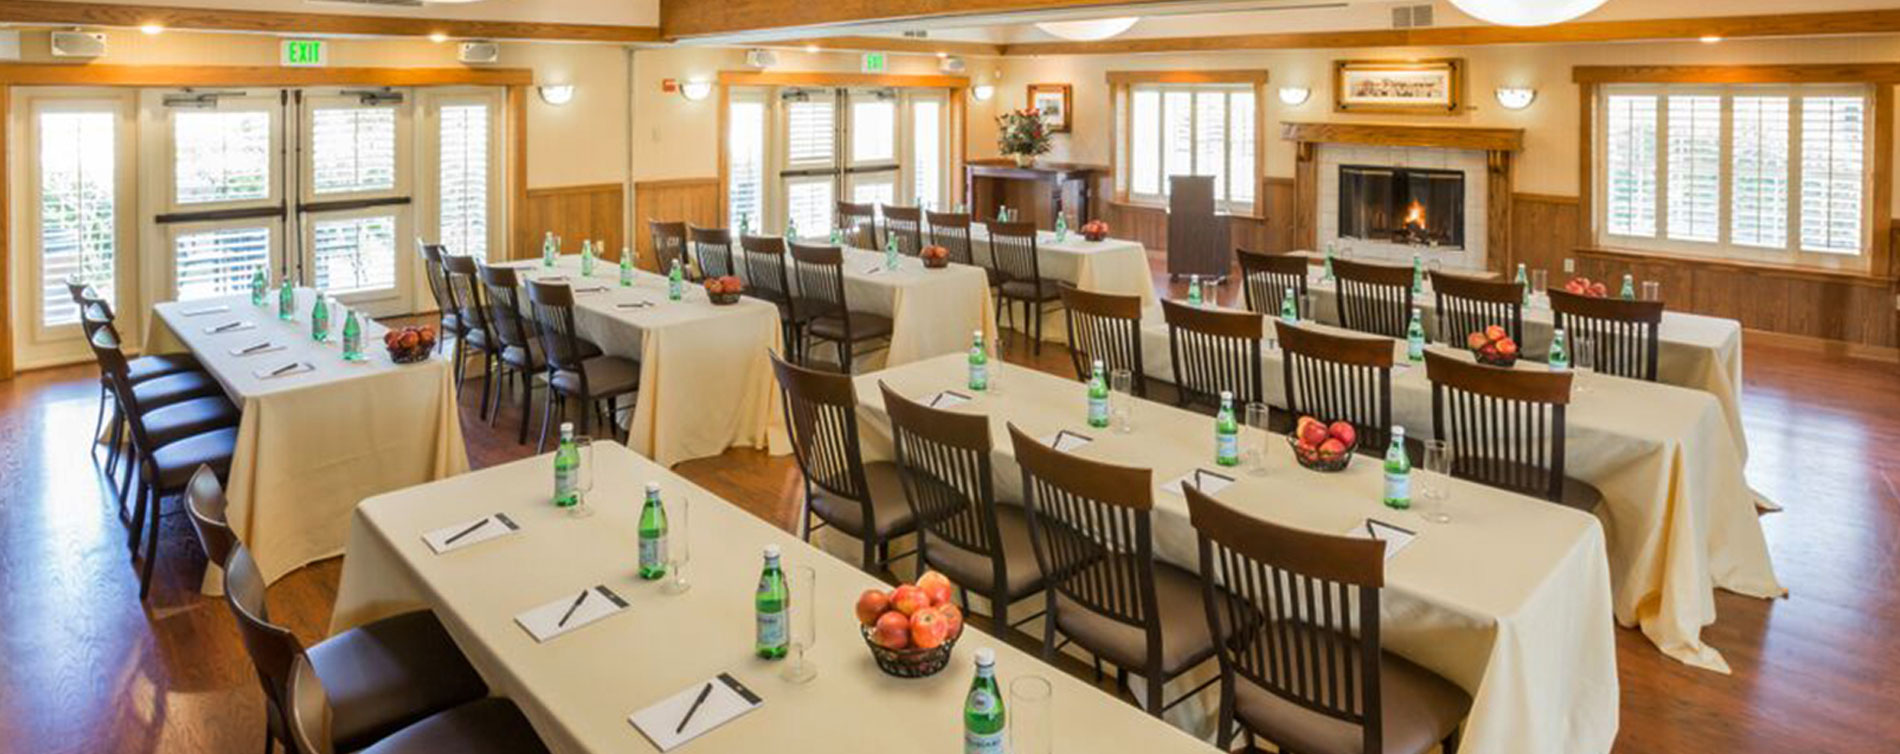 Meetings at BEST WESTERN Sonoma Valley Inn & Krug Event Center, California